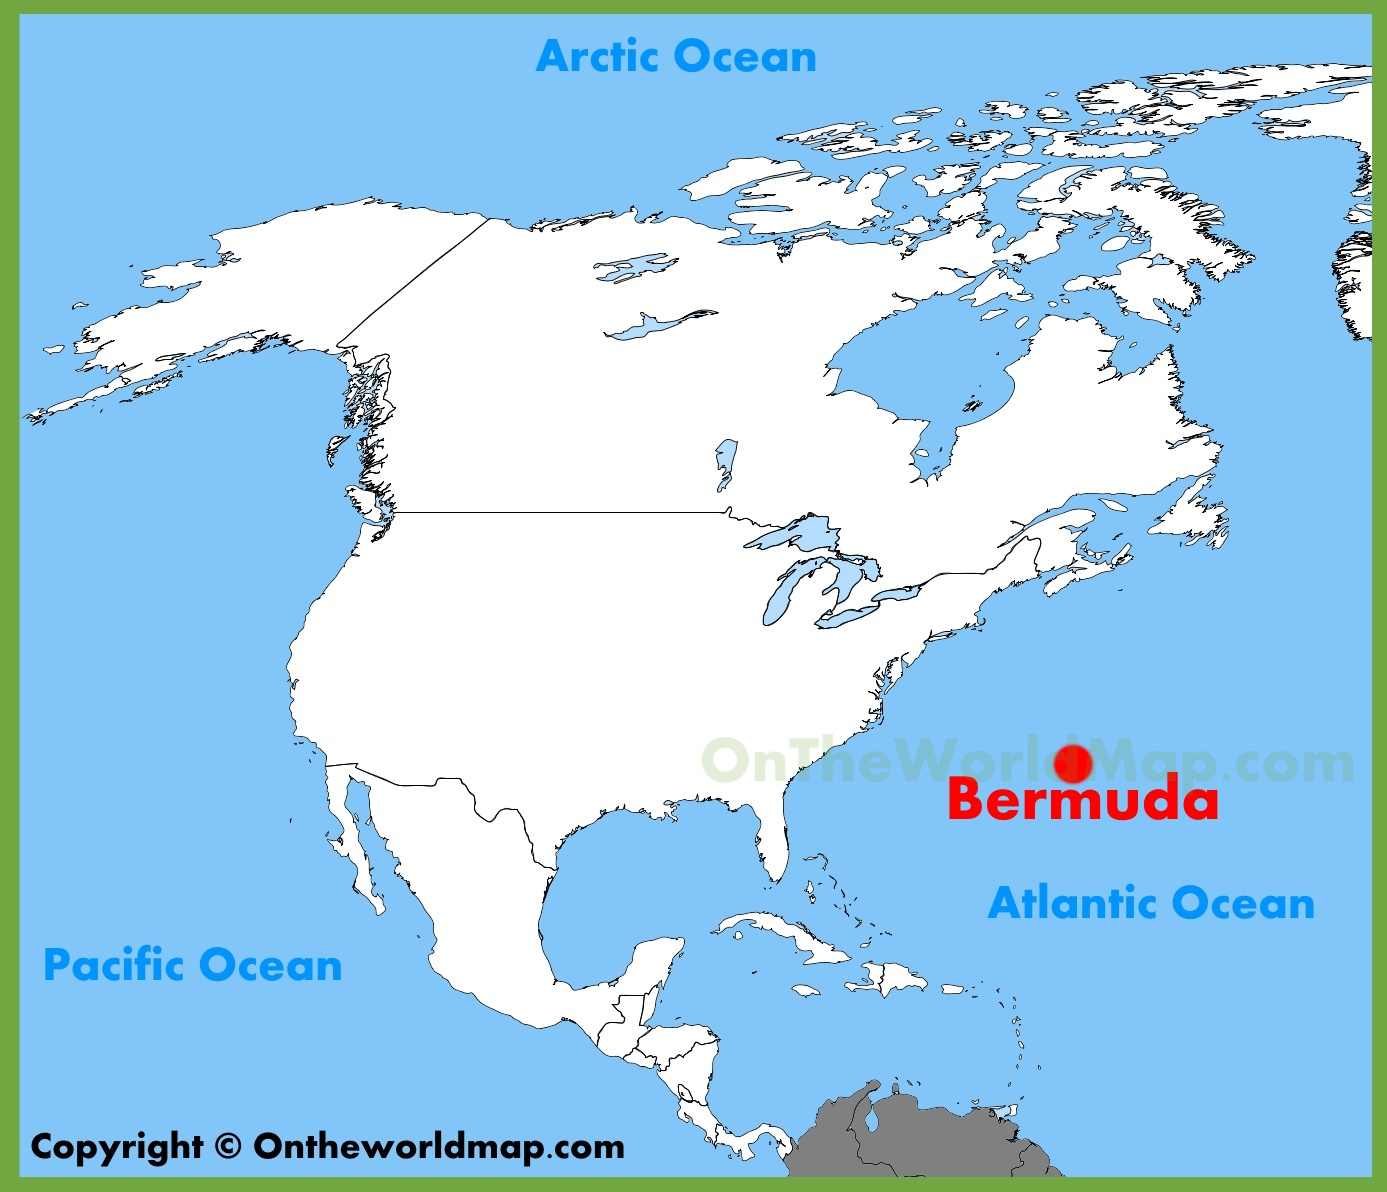 Bermuda Location On The North America Map - Bermuda in relation to us map